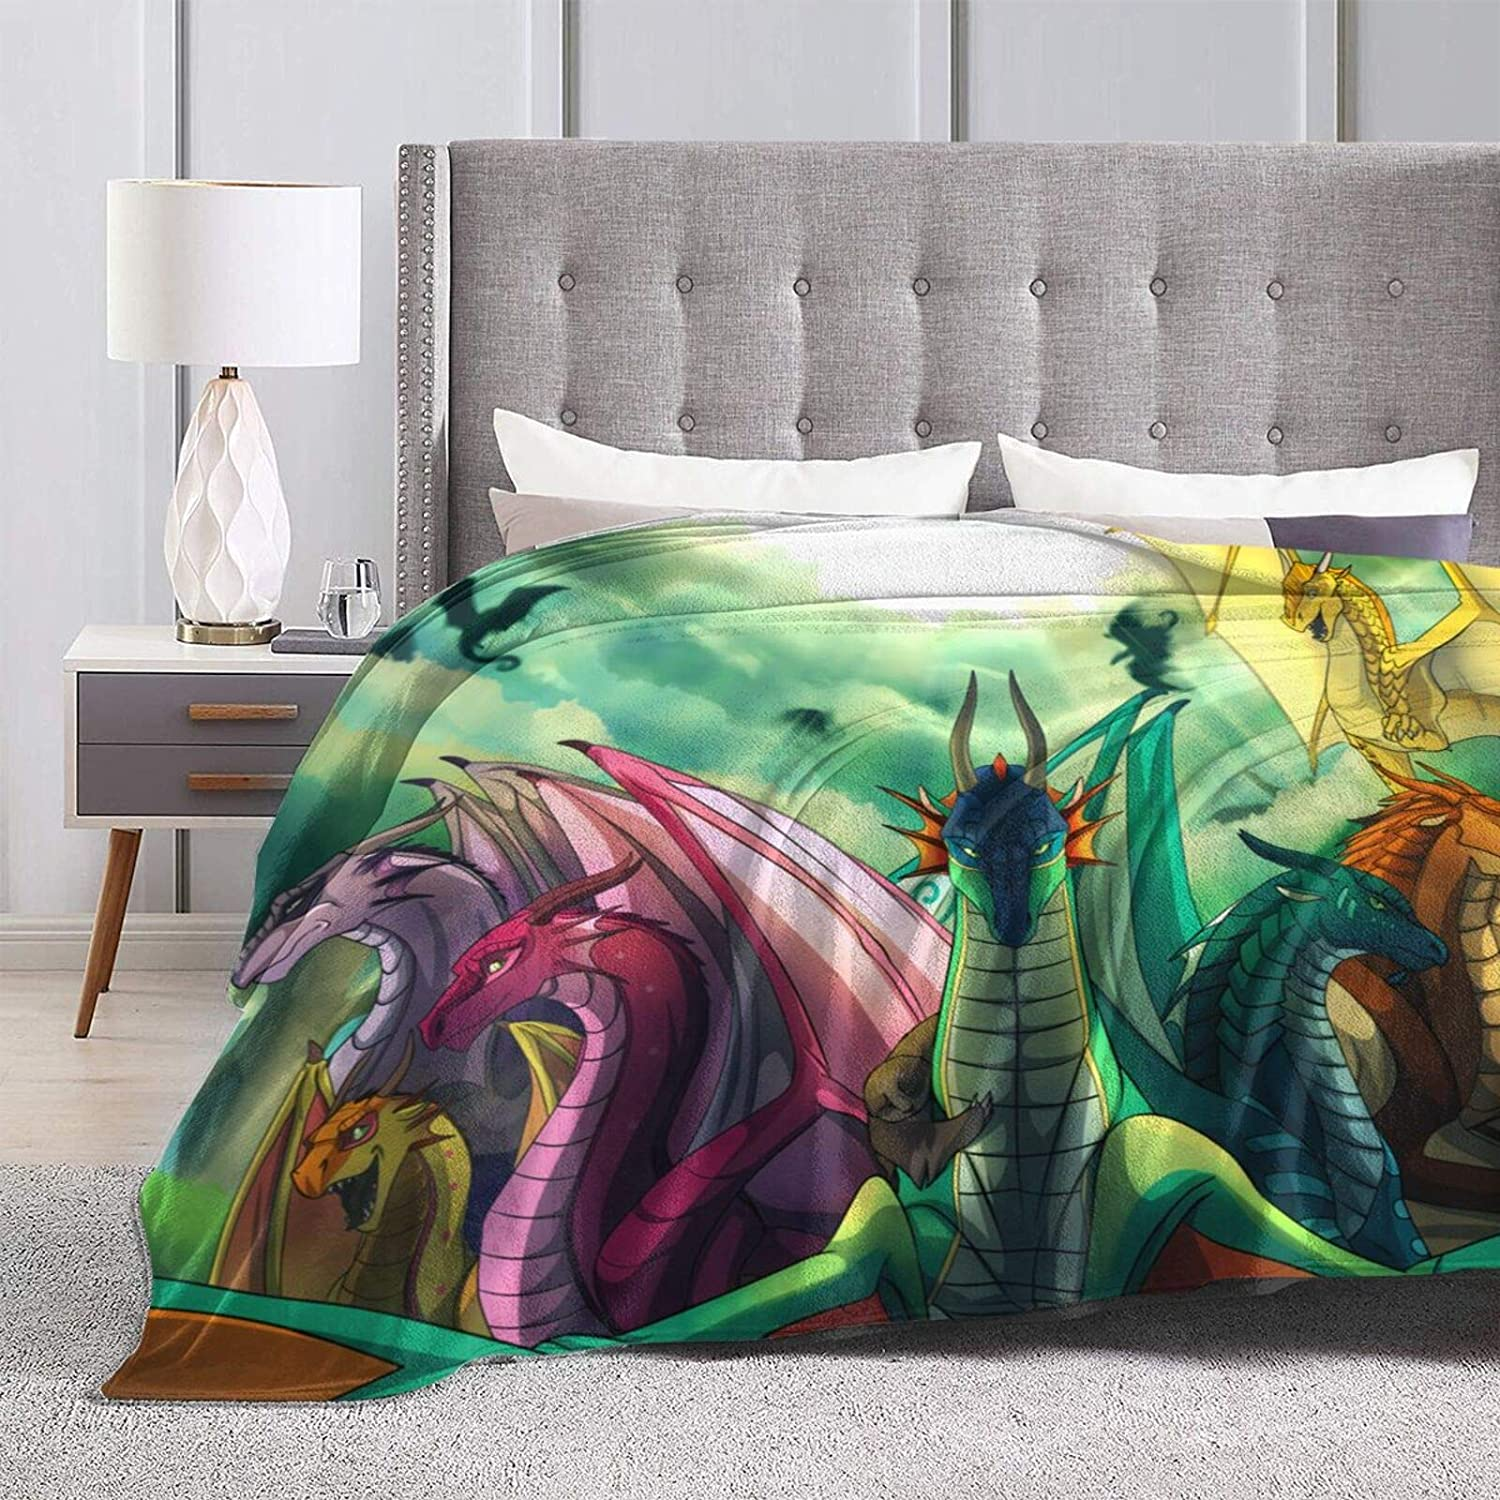 Wings-of-Fire Blanket Fleece Microfiber for Branded Courier shipping free shipping goods Sofa Couch Su Or Bed